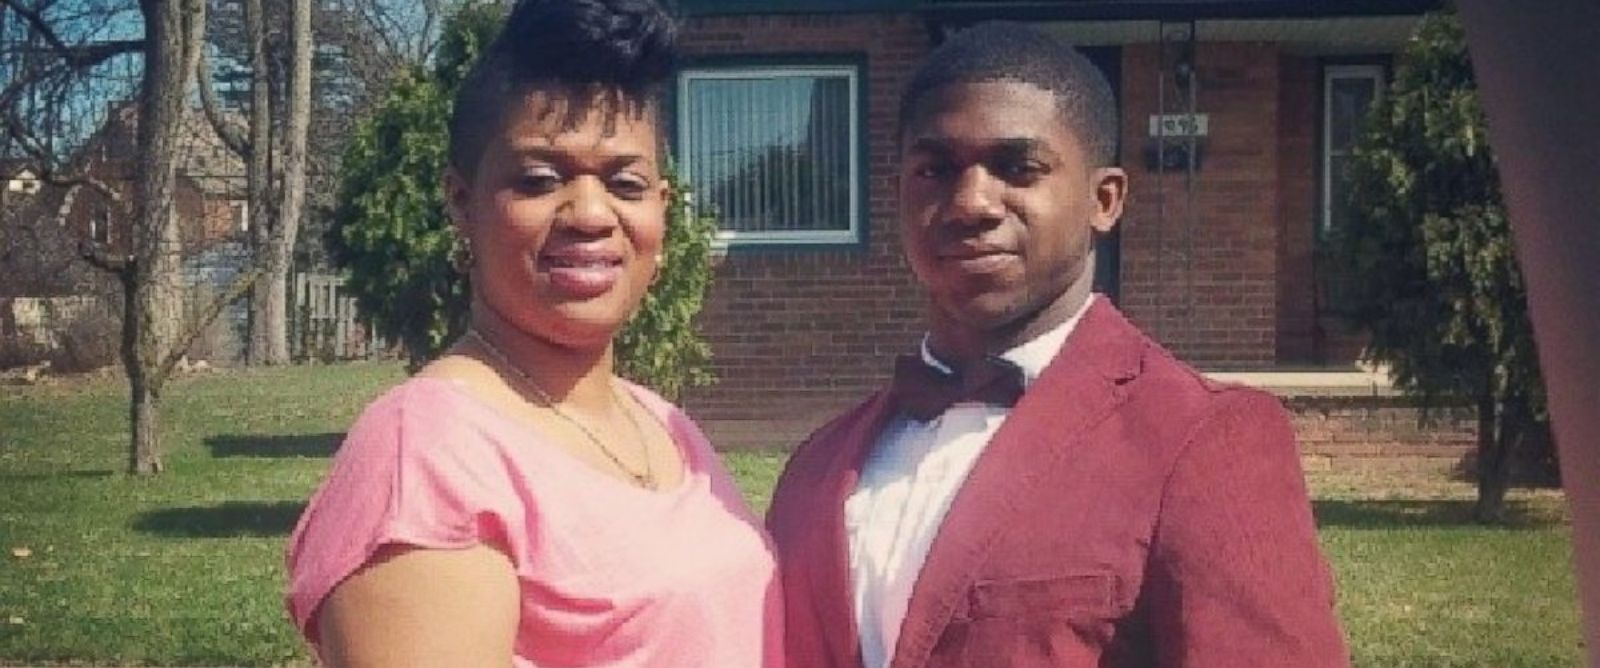 PHOTO: Danotiss Smith invited his mother Belinda to prom after hearing why she couldnt attend her own.